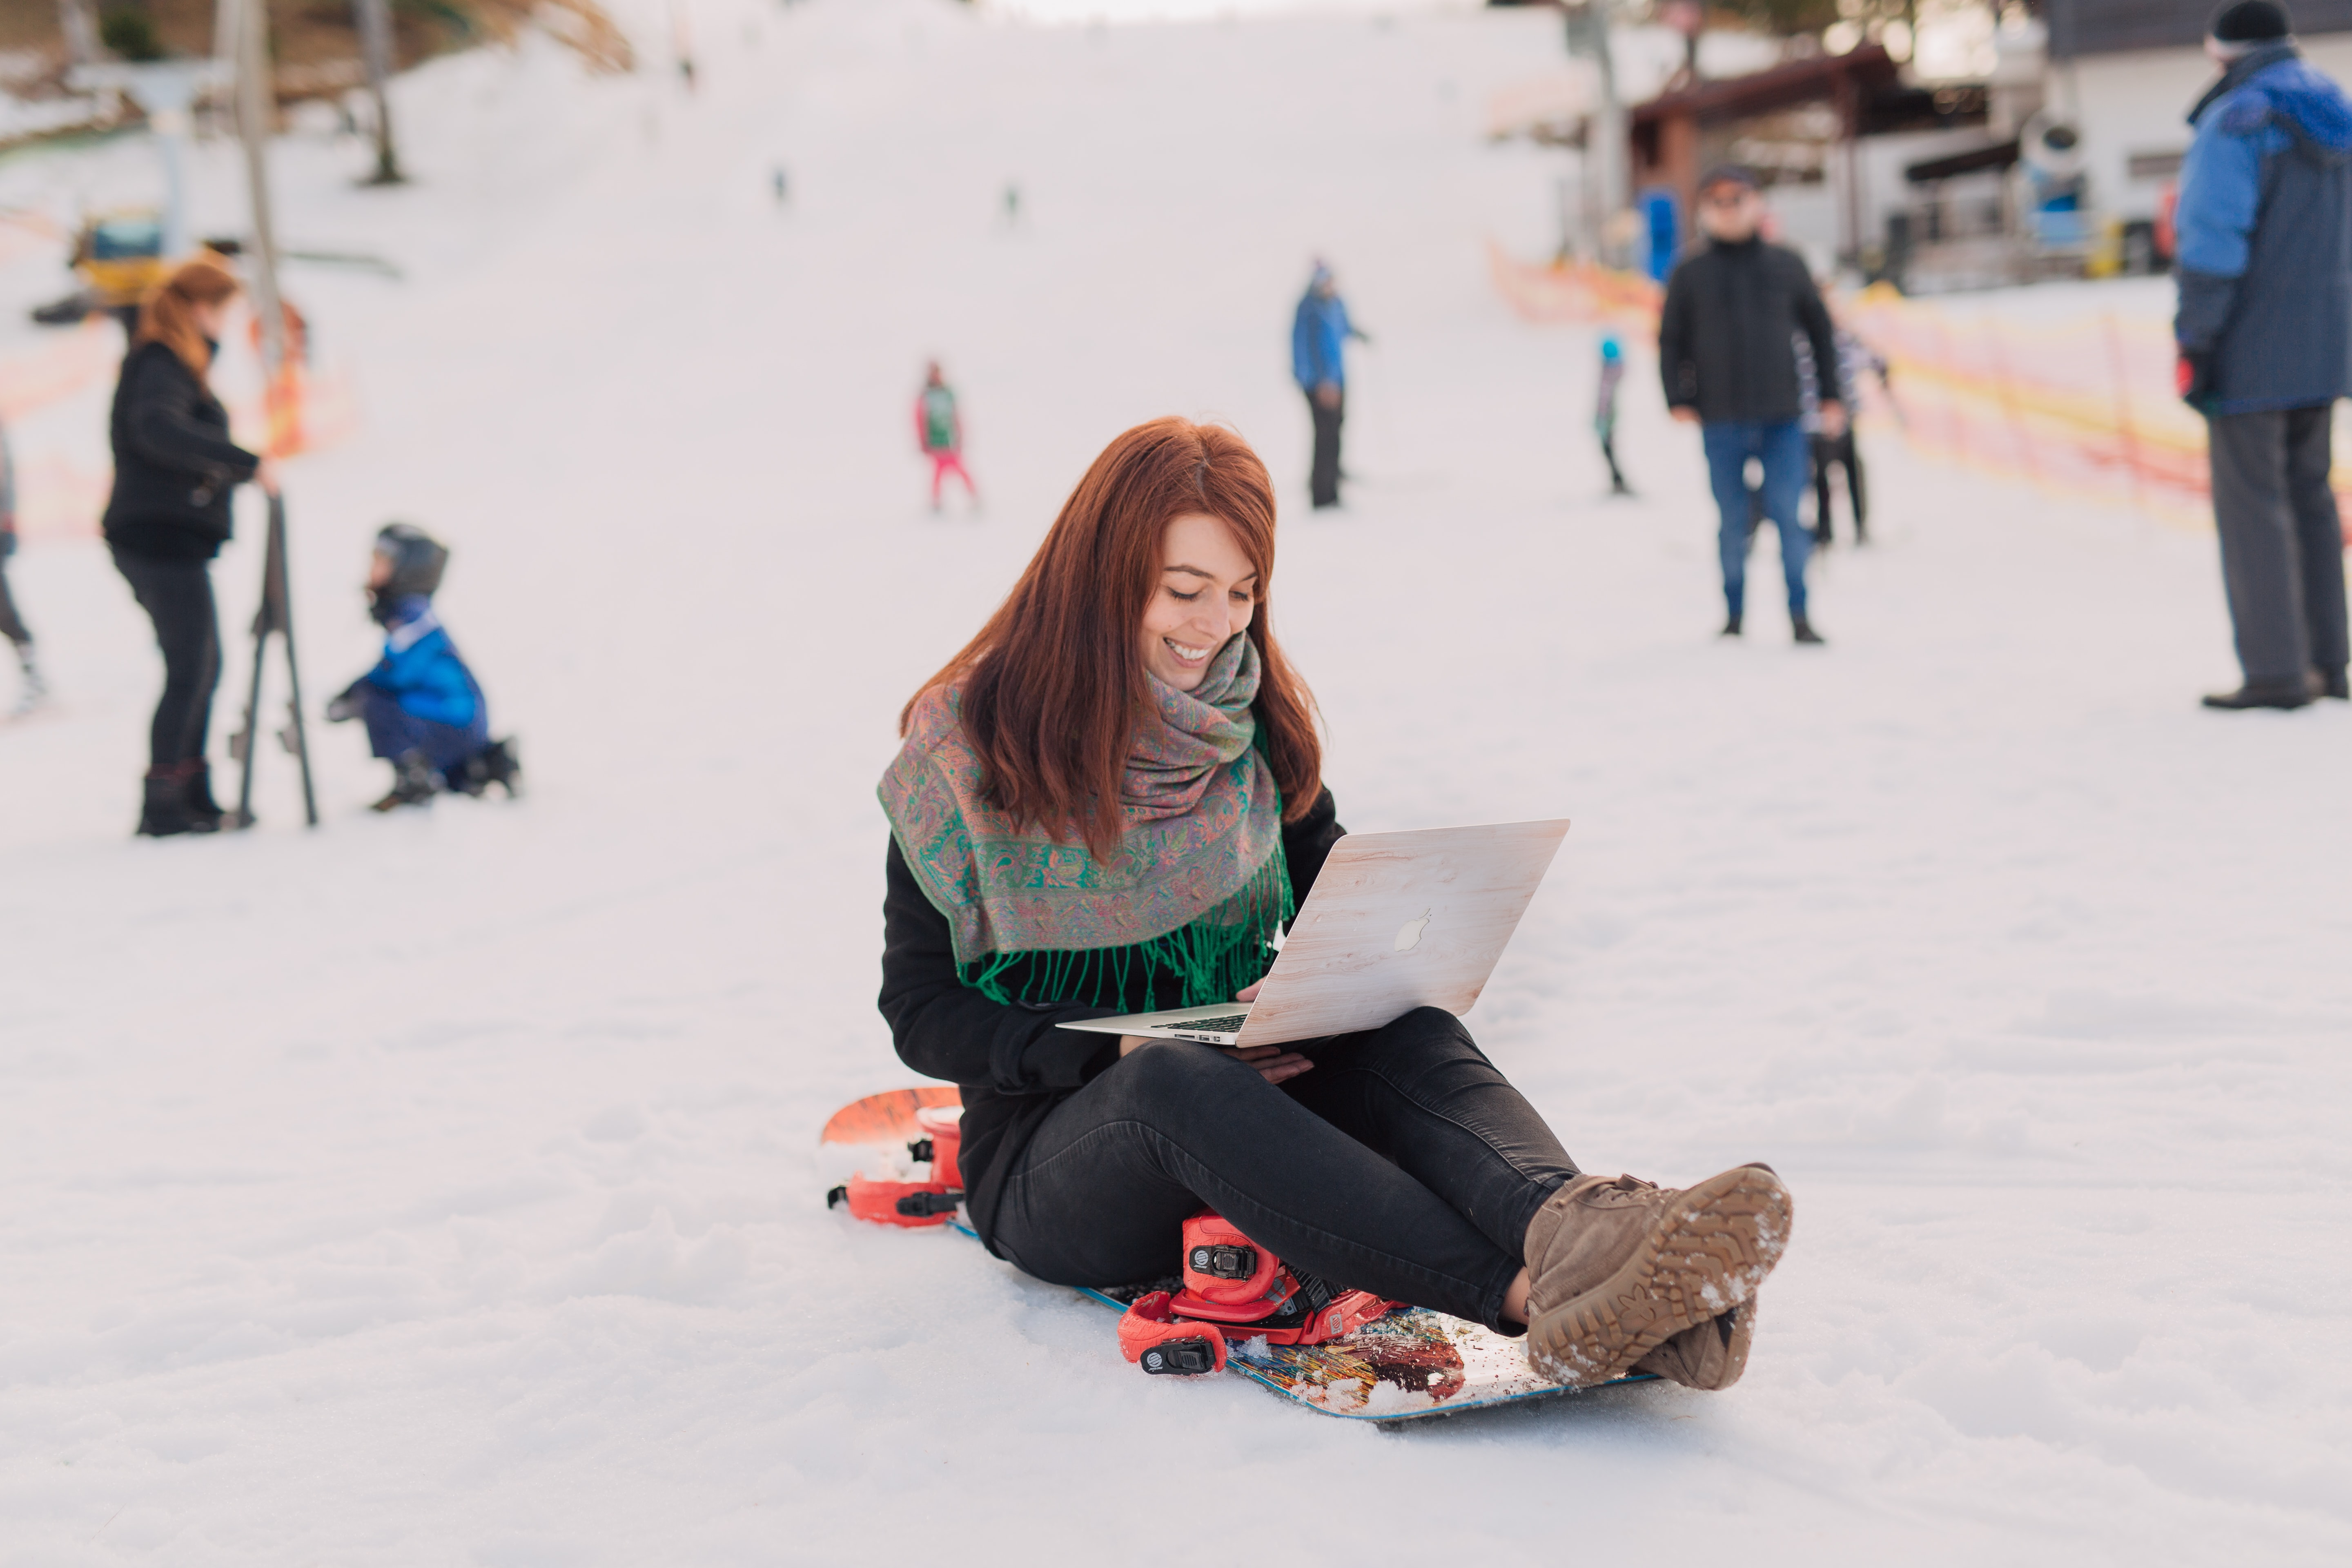 woman sitting on snowboard using MacBook Pro